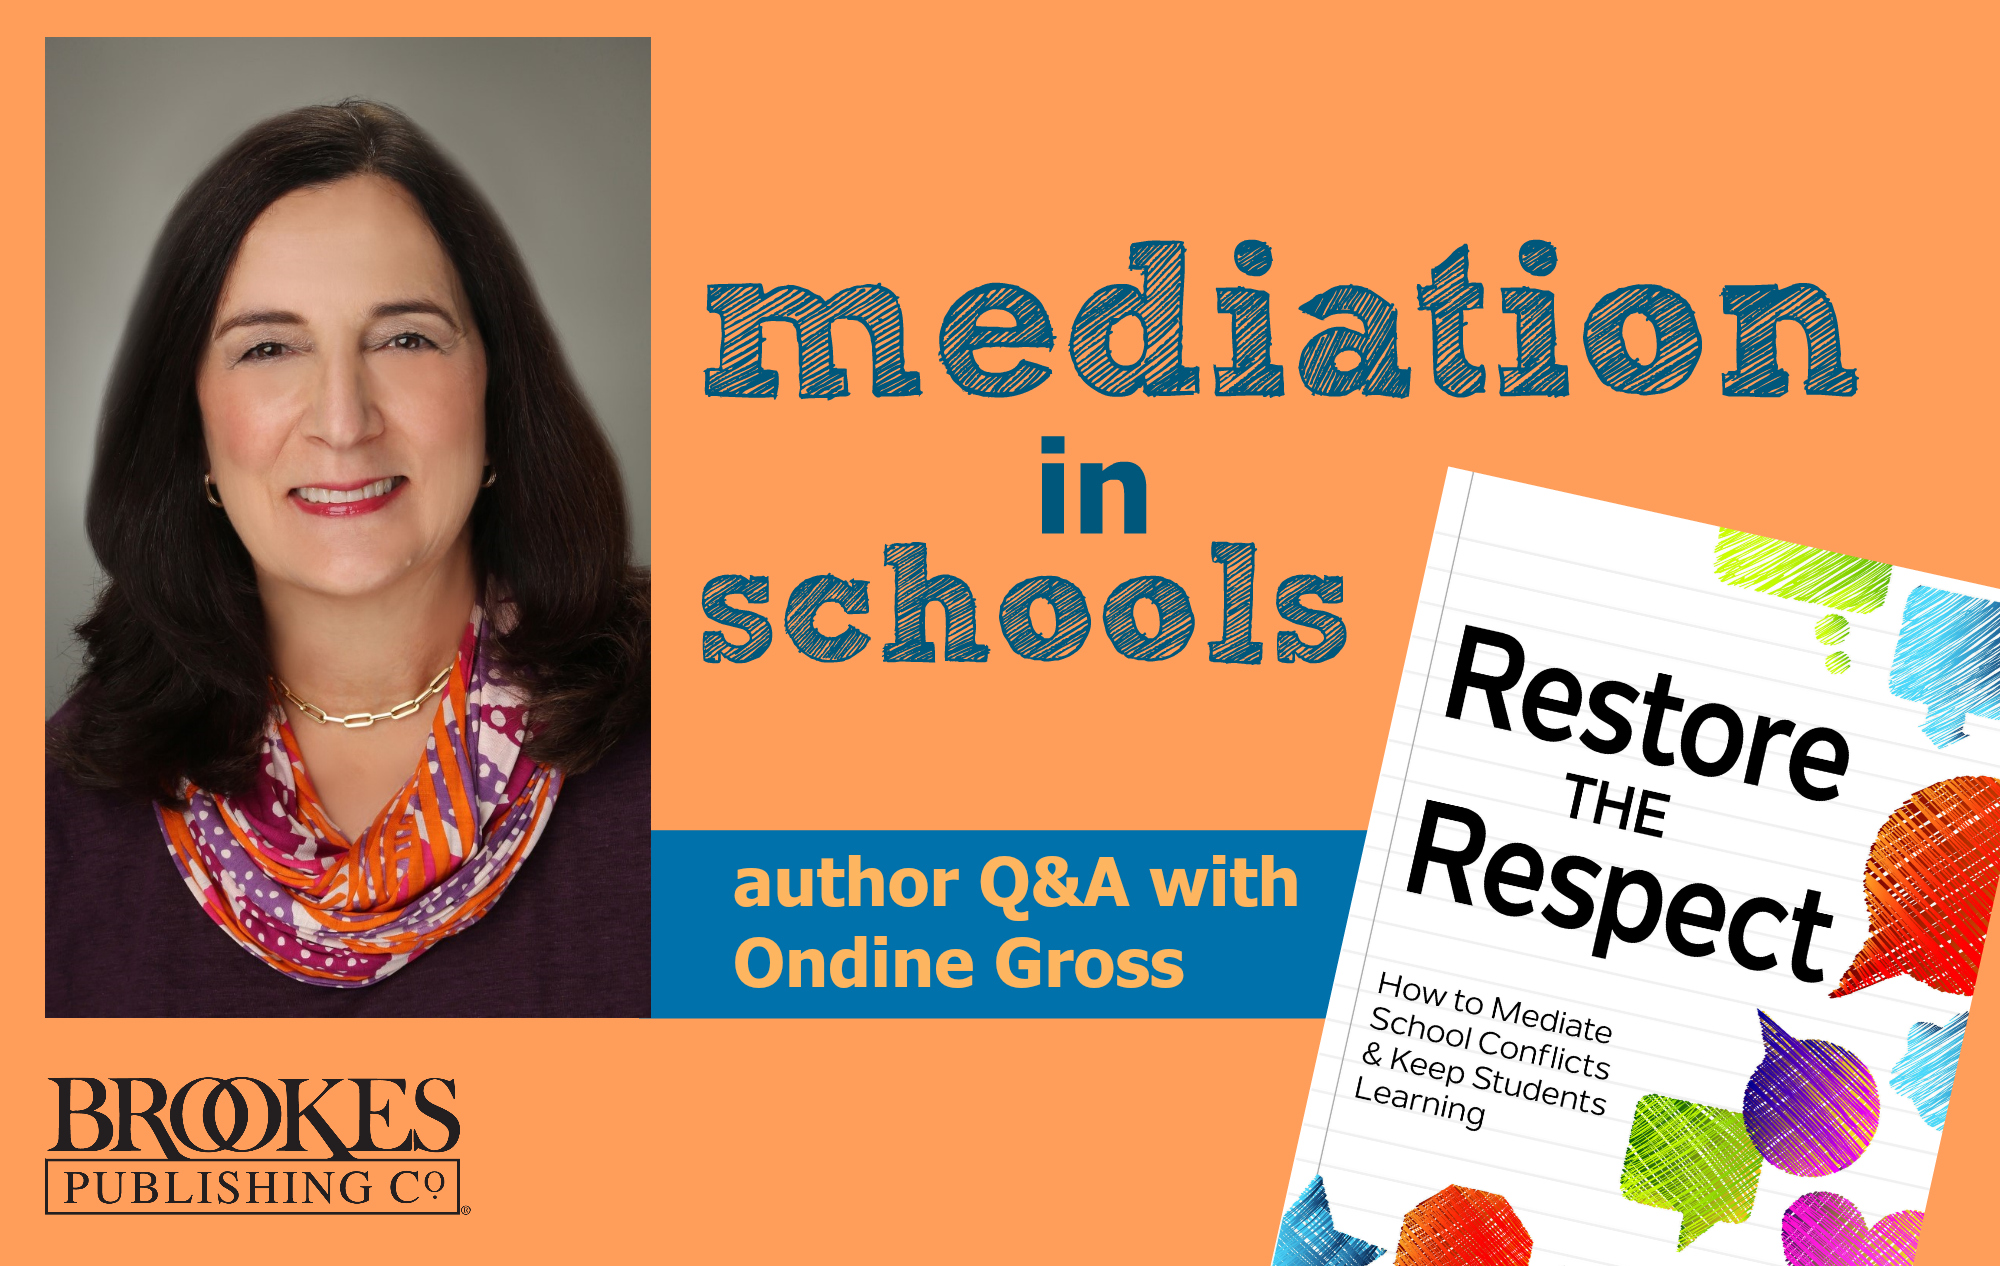 mediation in schools